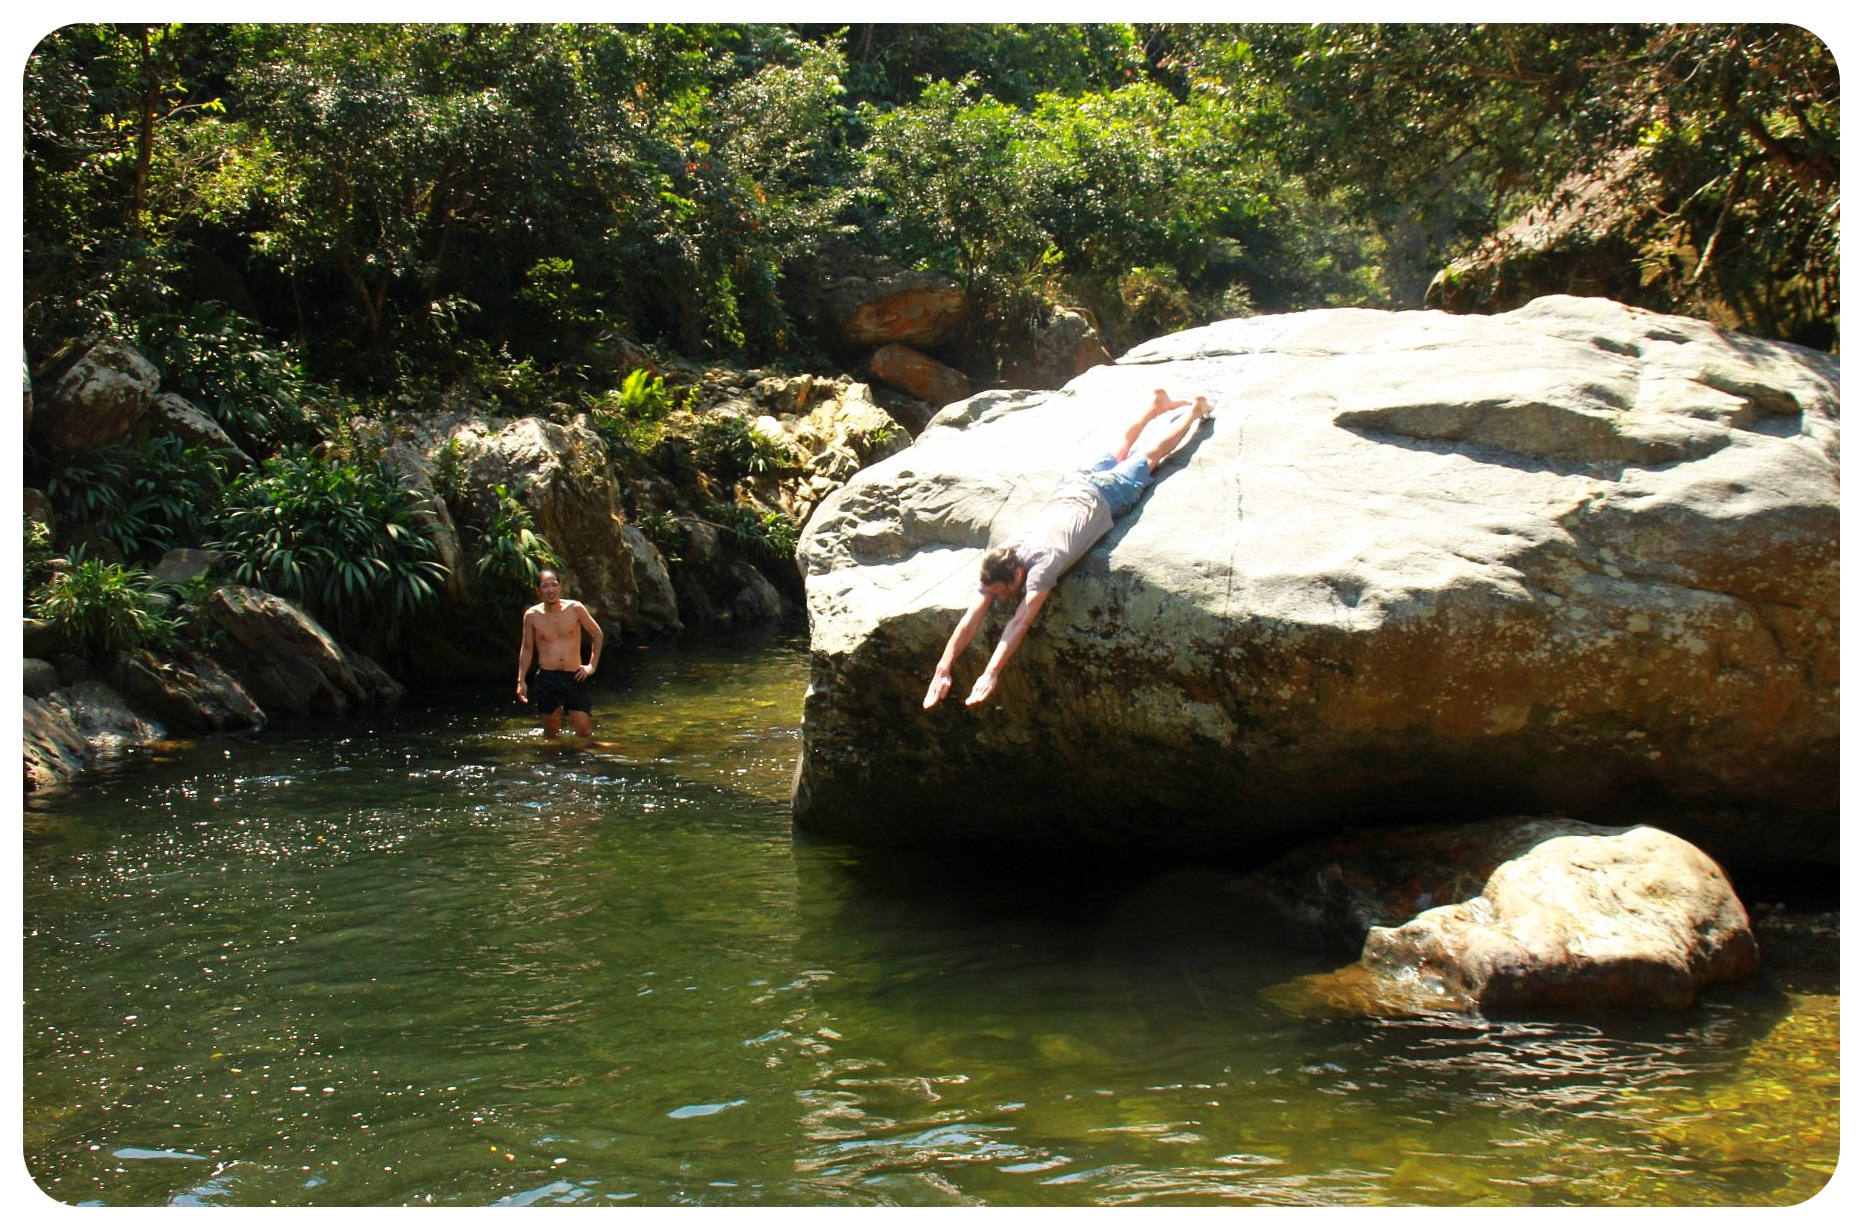 lost city trek river bath